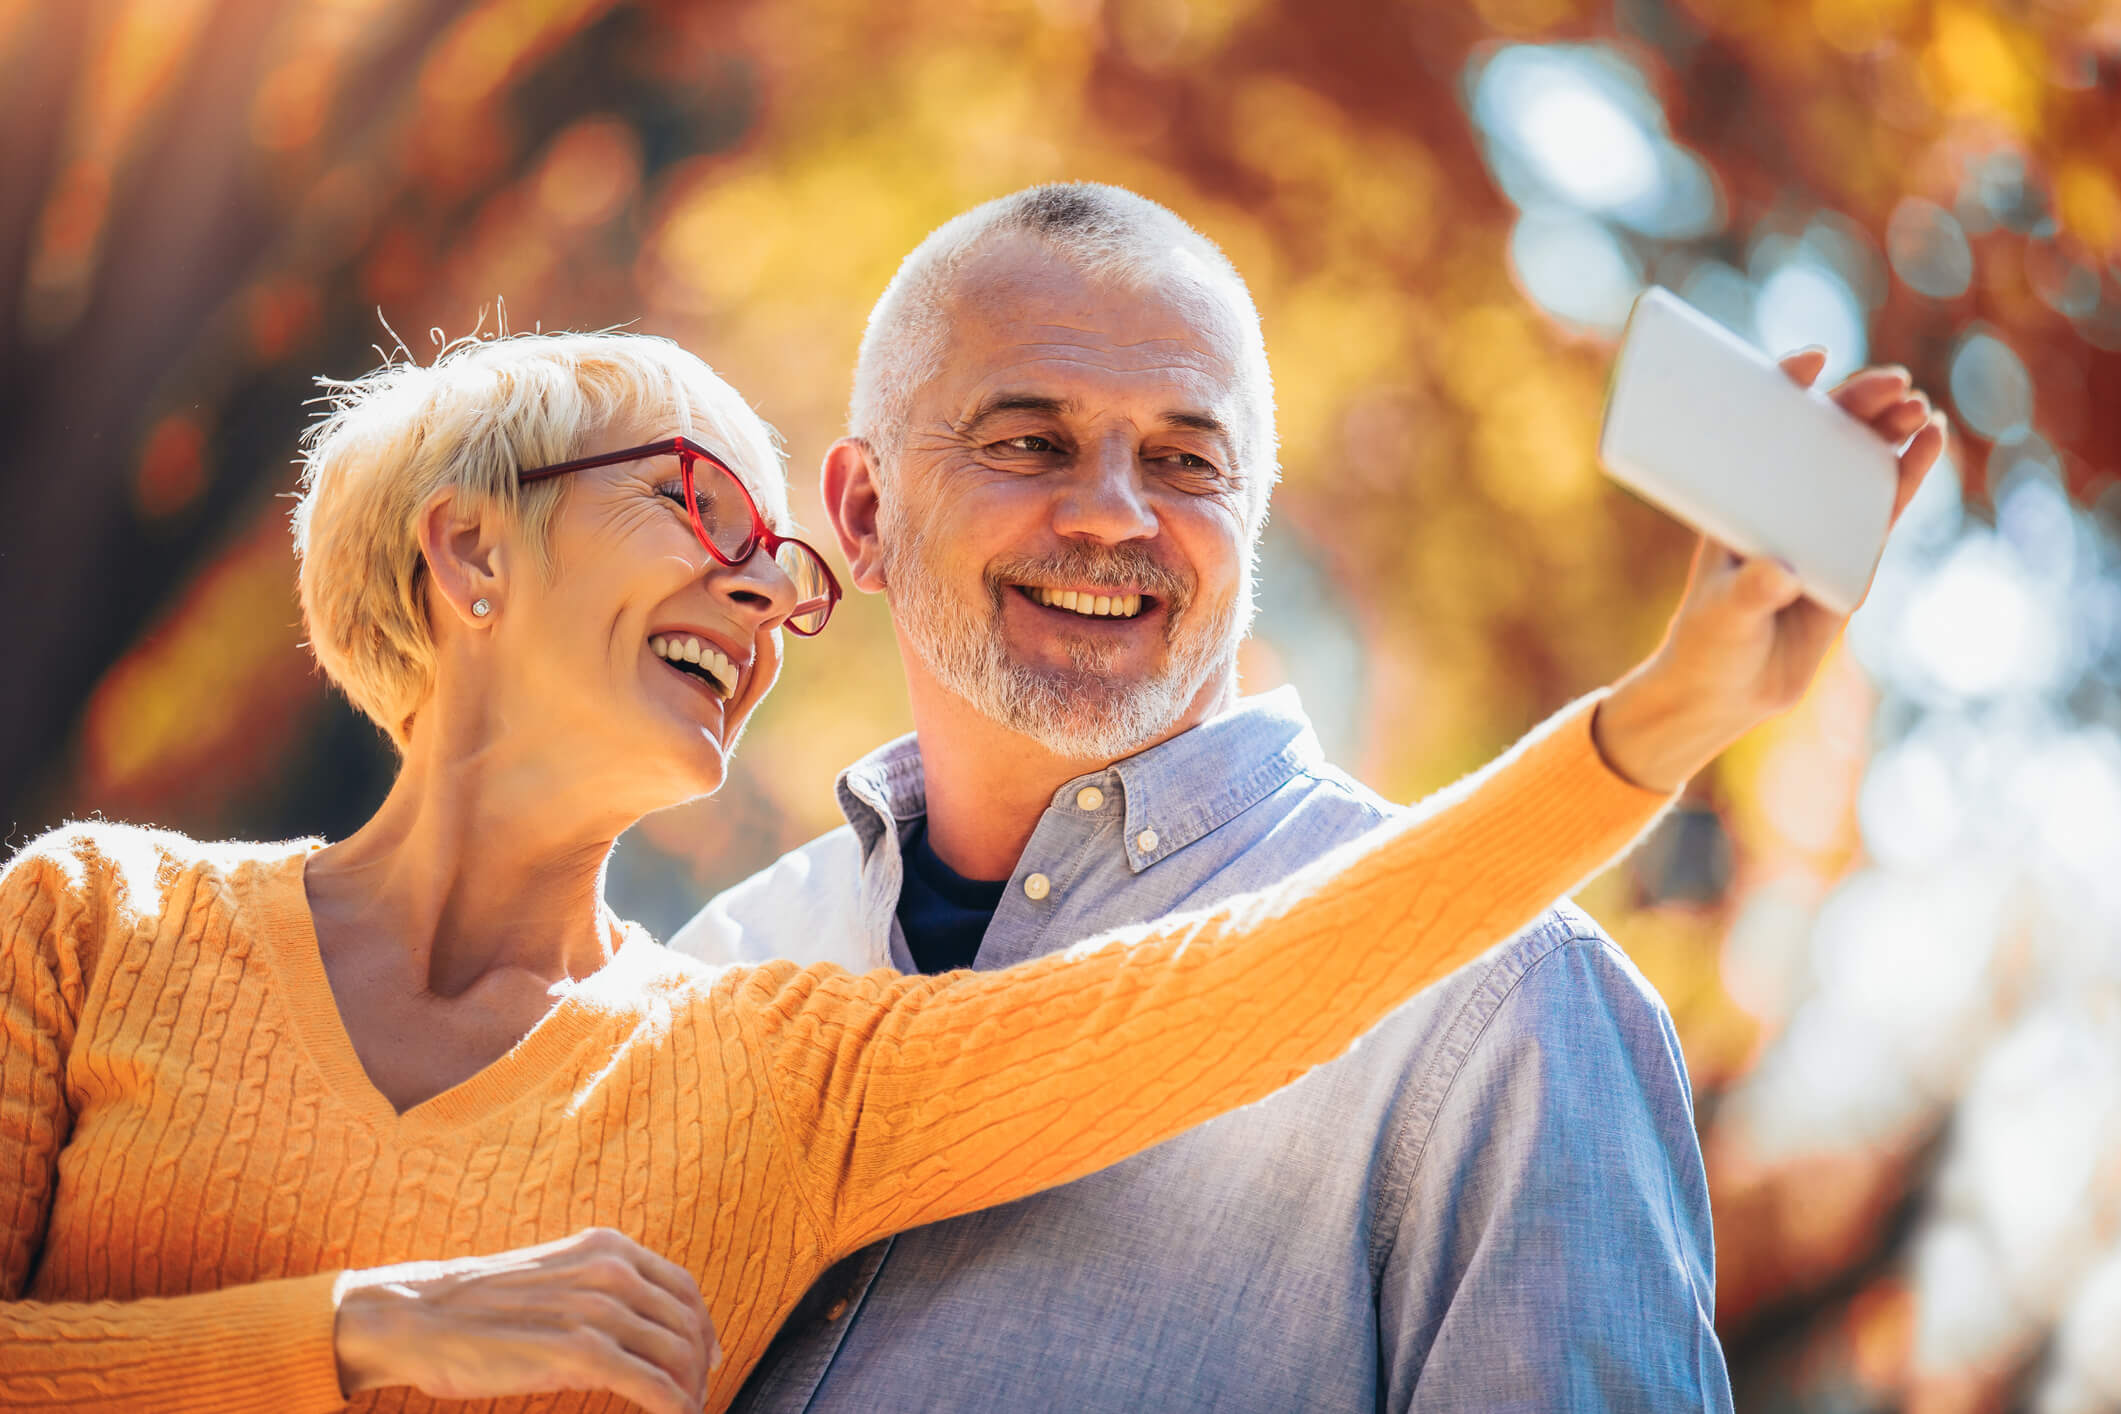 best touchtone phone use plans an eye to seniors